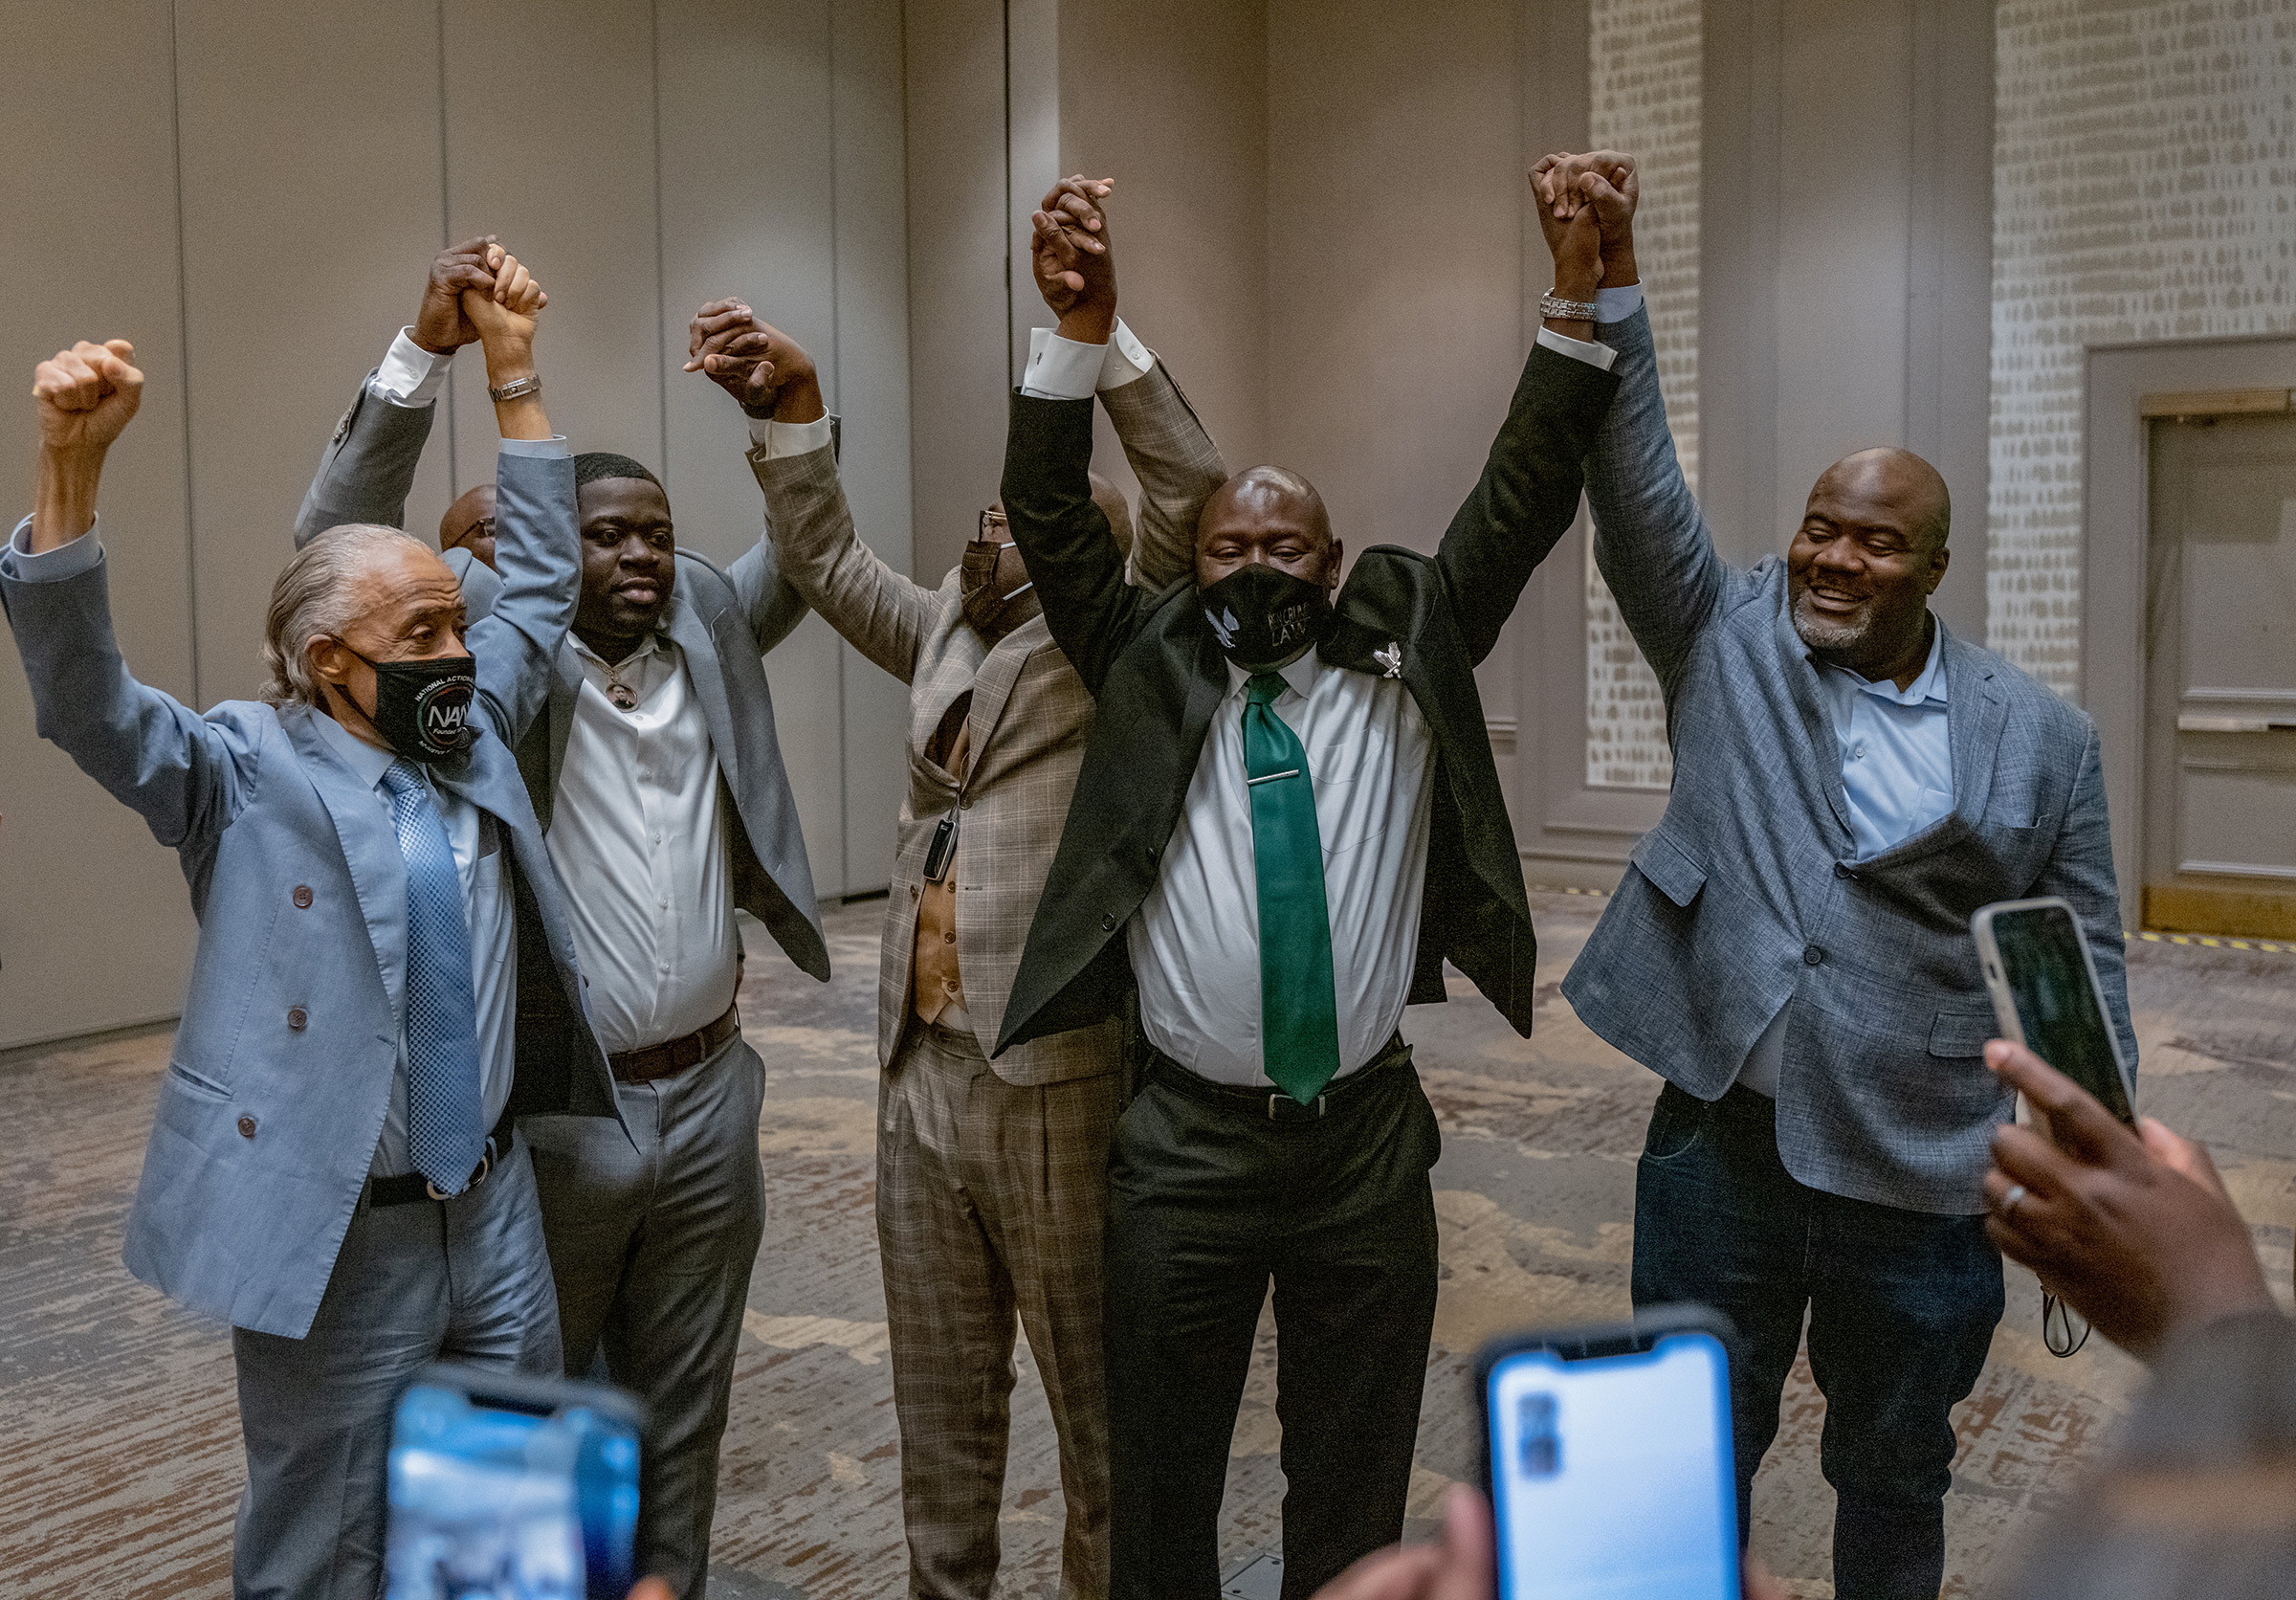 Attorney Ben Crump (C), with Reverend Al Sharpton (L) and members of George Floyd's family, reacts following the guilty verdict in the trial of former police officer Derek Chauvin in Minneapolis on April 20.